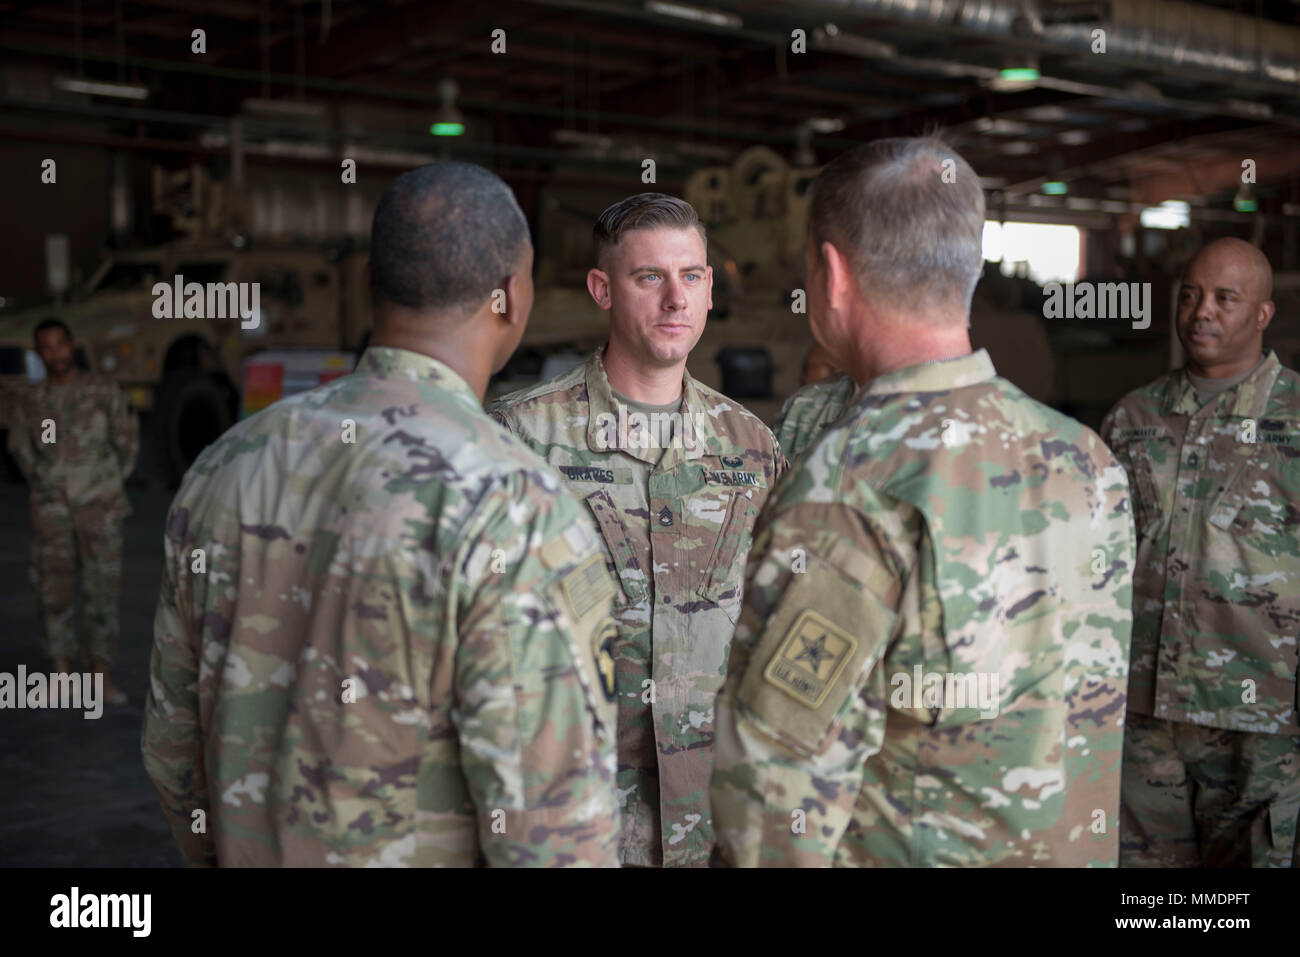 401st Afsbn A Stock Photos & 401st Afsbn A Stock Images - Alamy